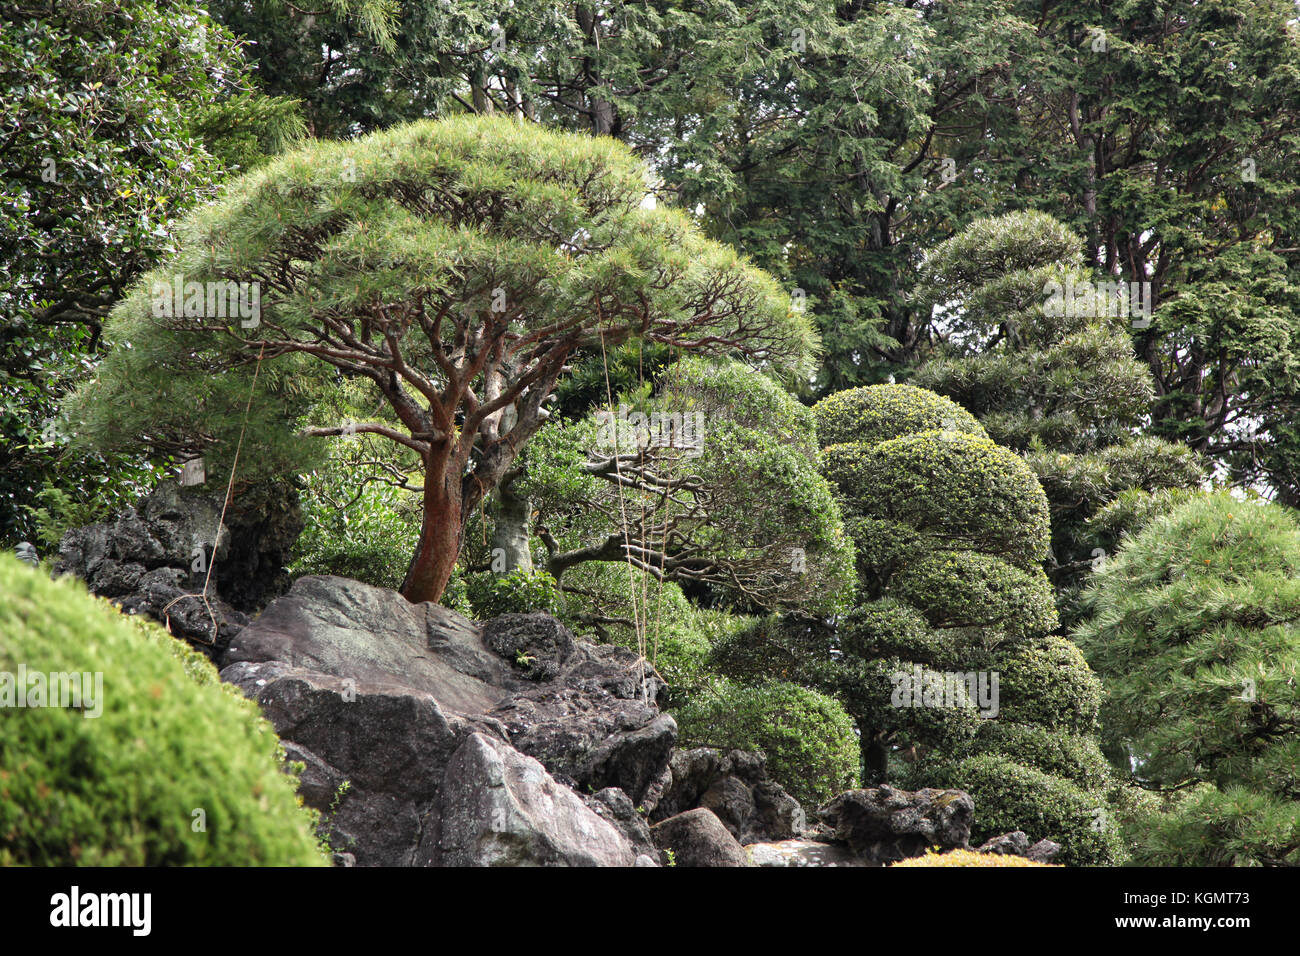 Bonsai Trees Growing Outdoor In A Garden On A Slope Stock Photo Alamy